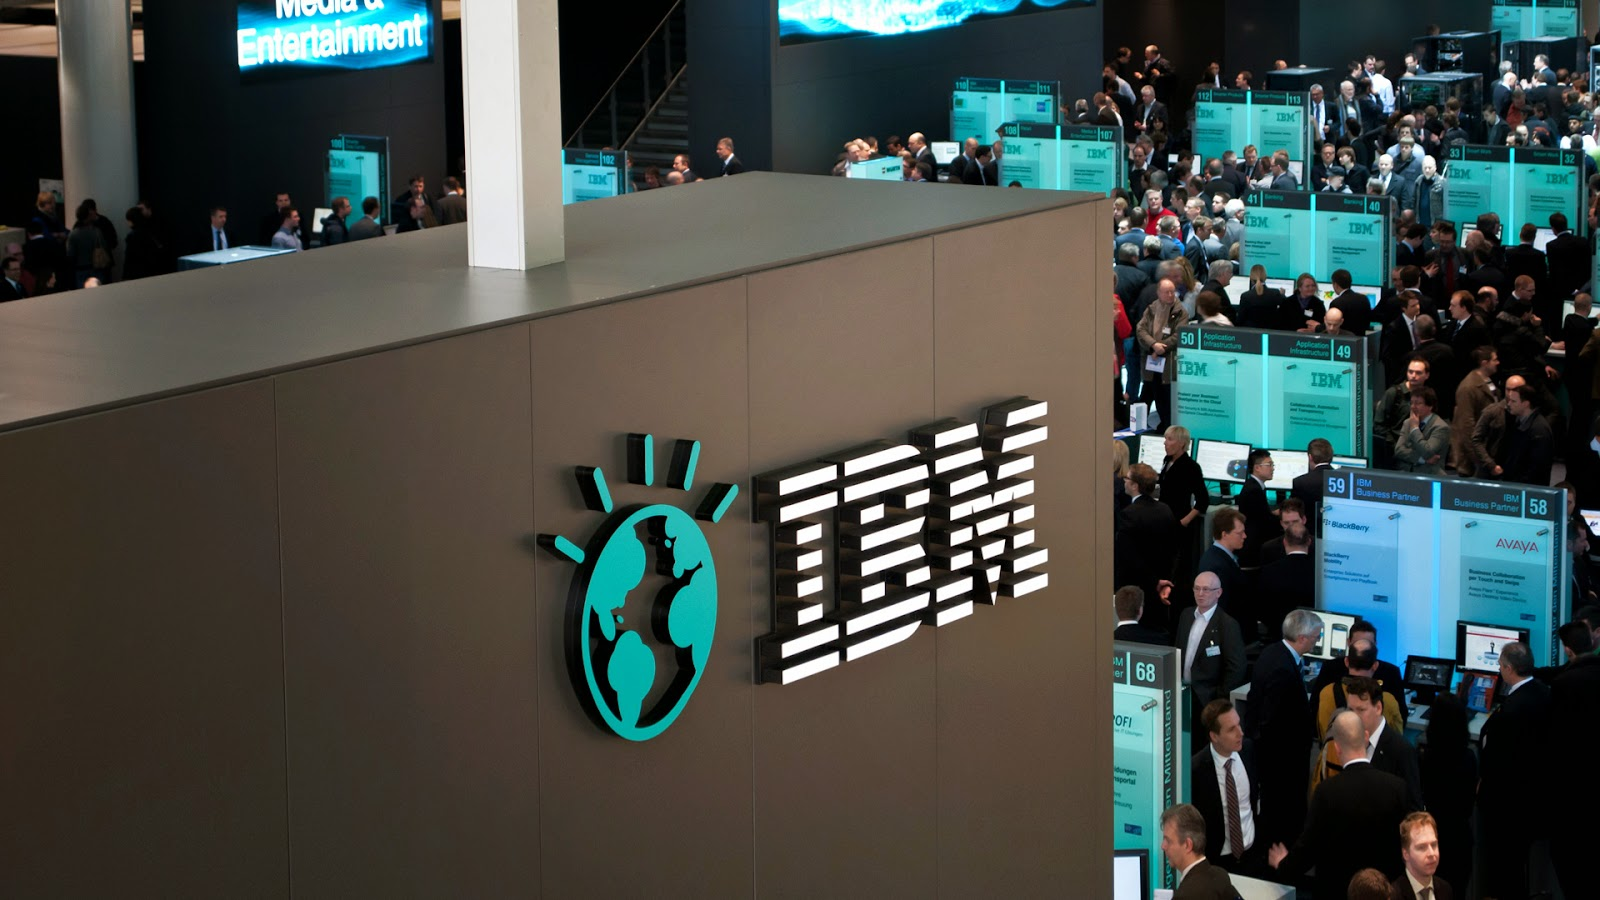 nubdish pot ibm to sack employees in record mass ibm to sack 111 800 employees in record mass layoff